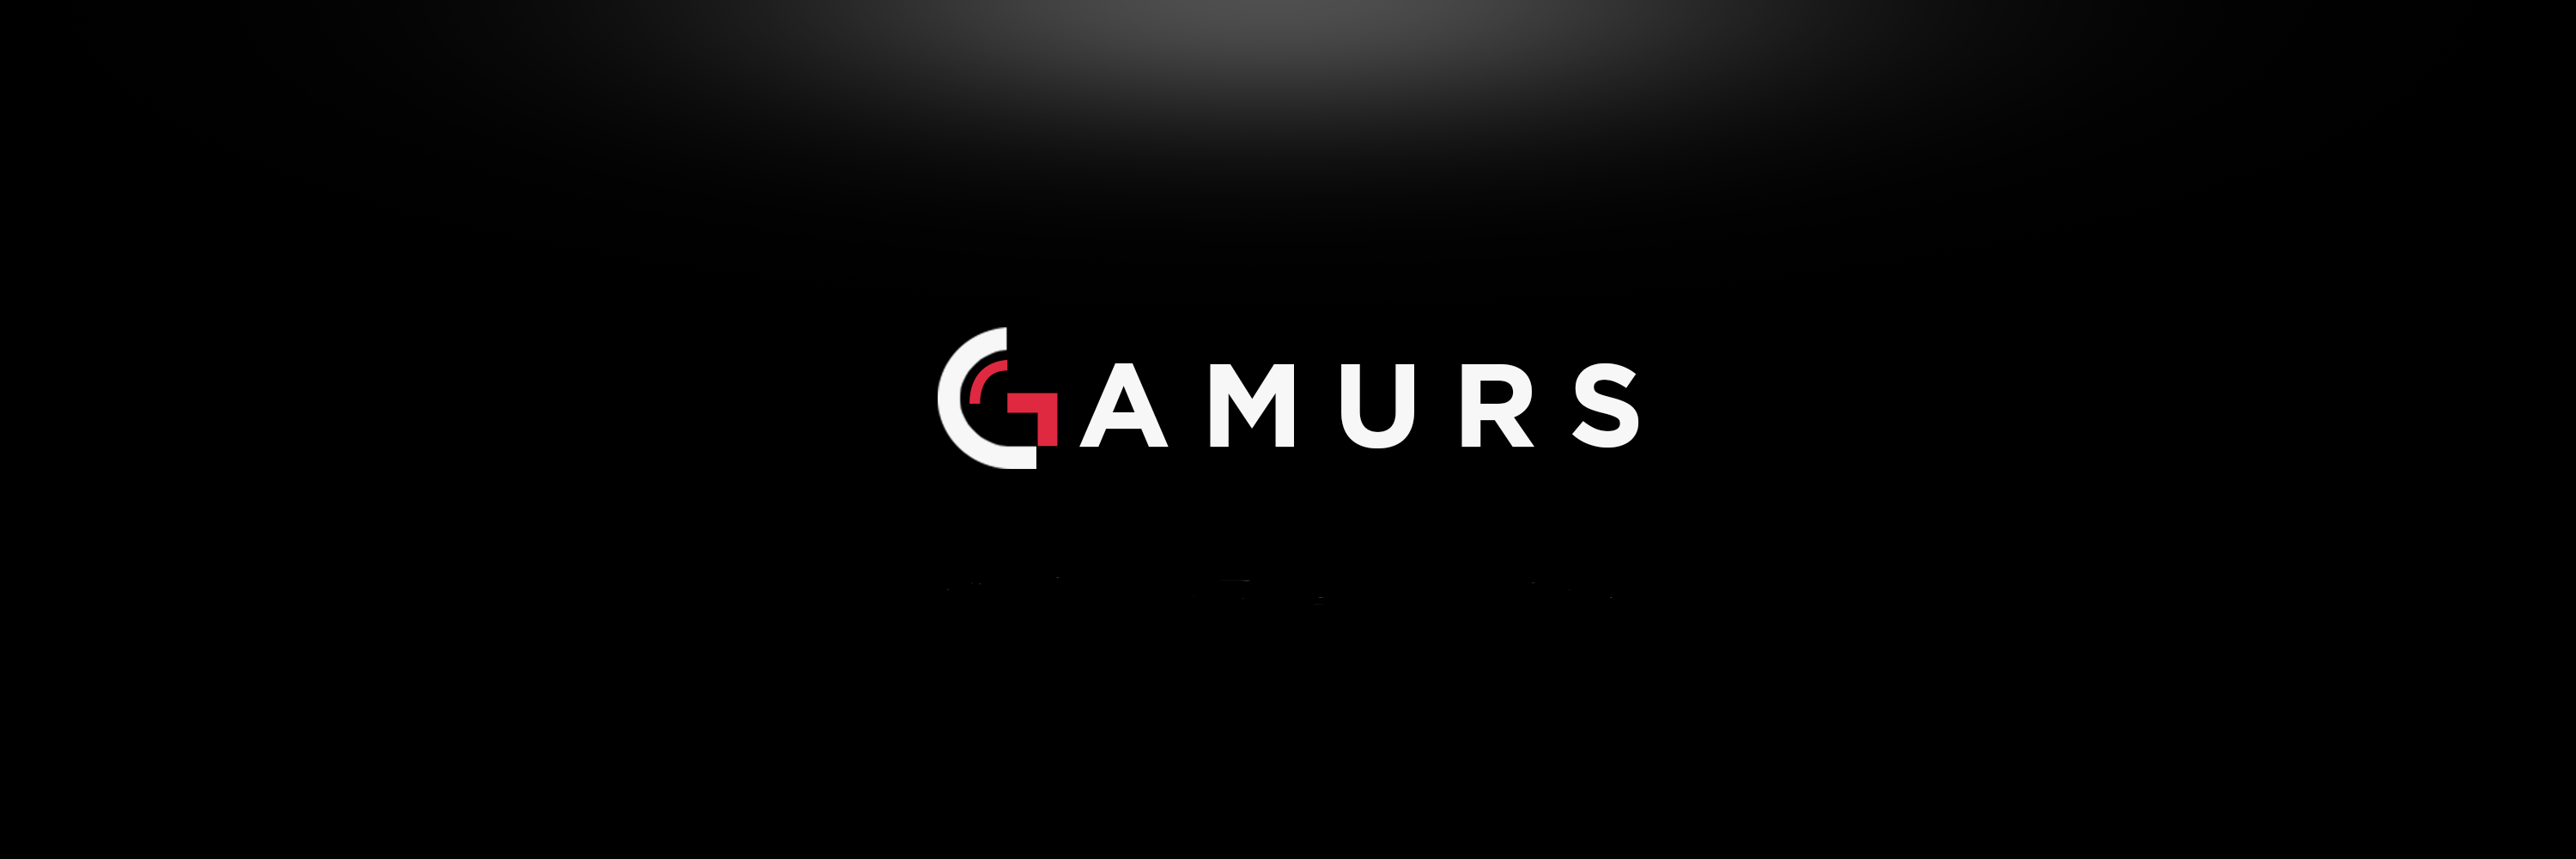 Esports Media Network GAMURS hits 4.22 million users on its global network thanks to success of its online competitive gaming platforms